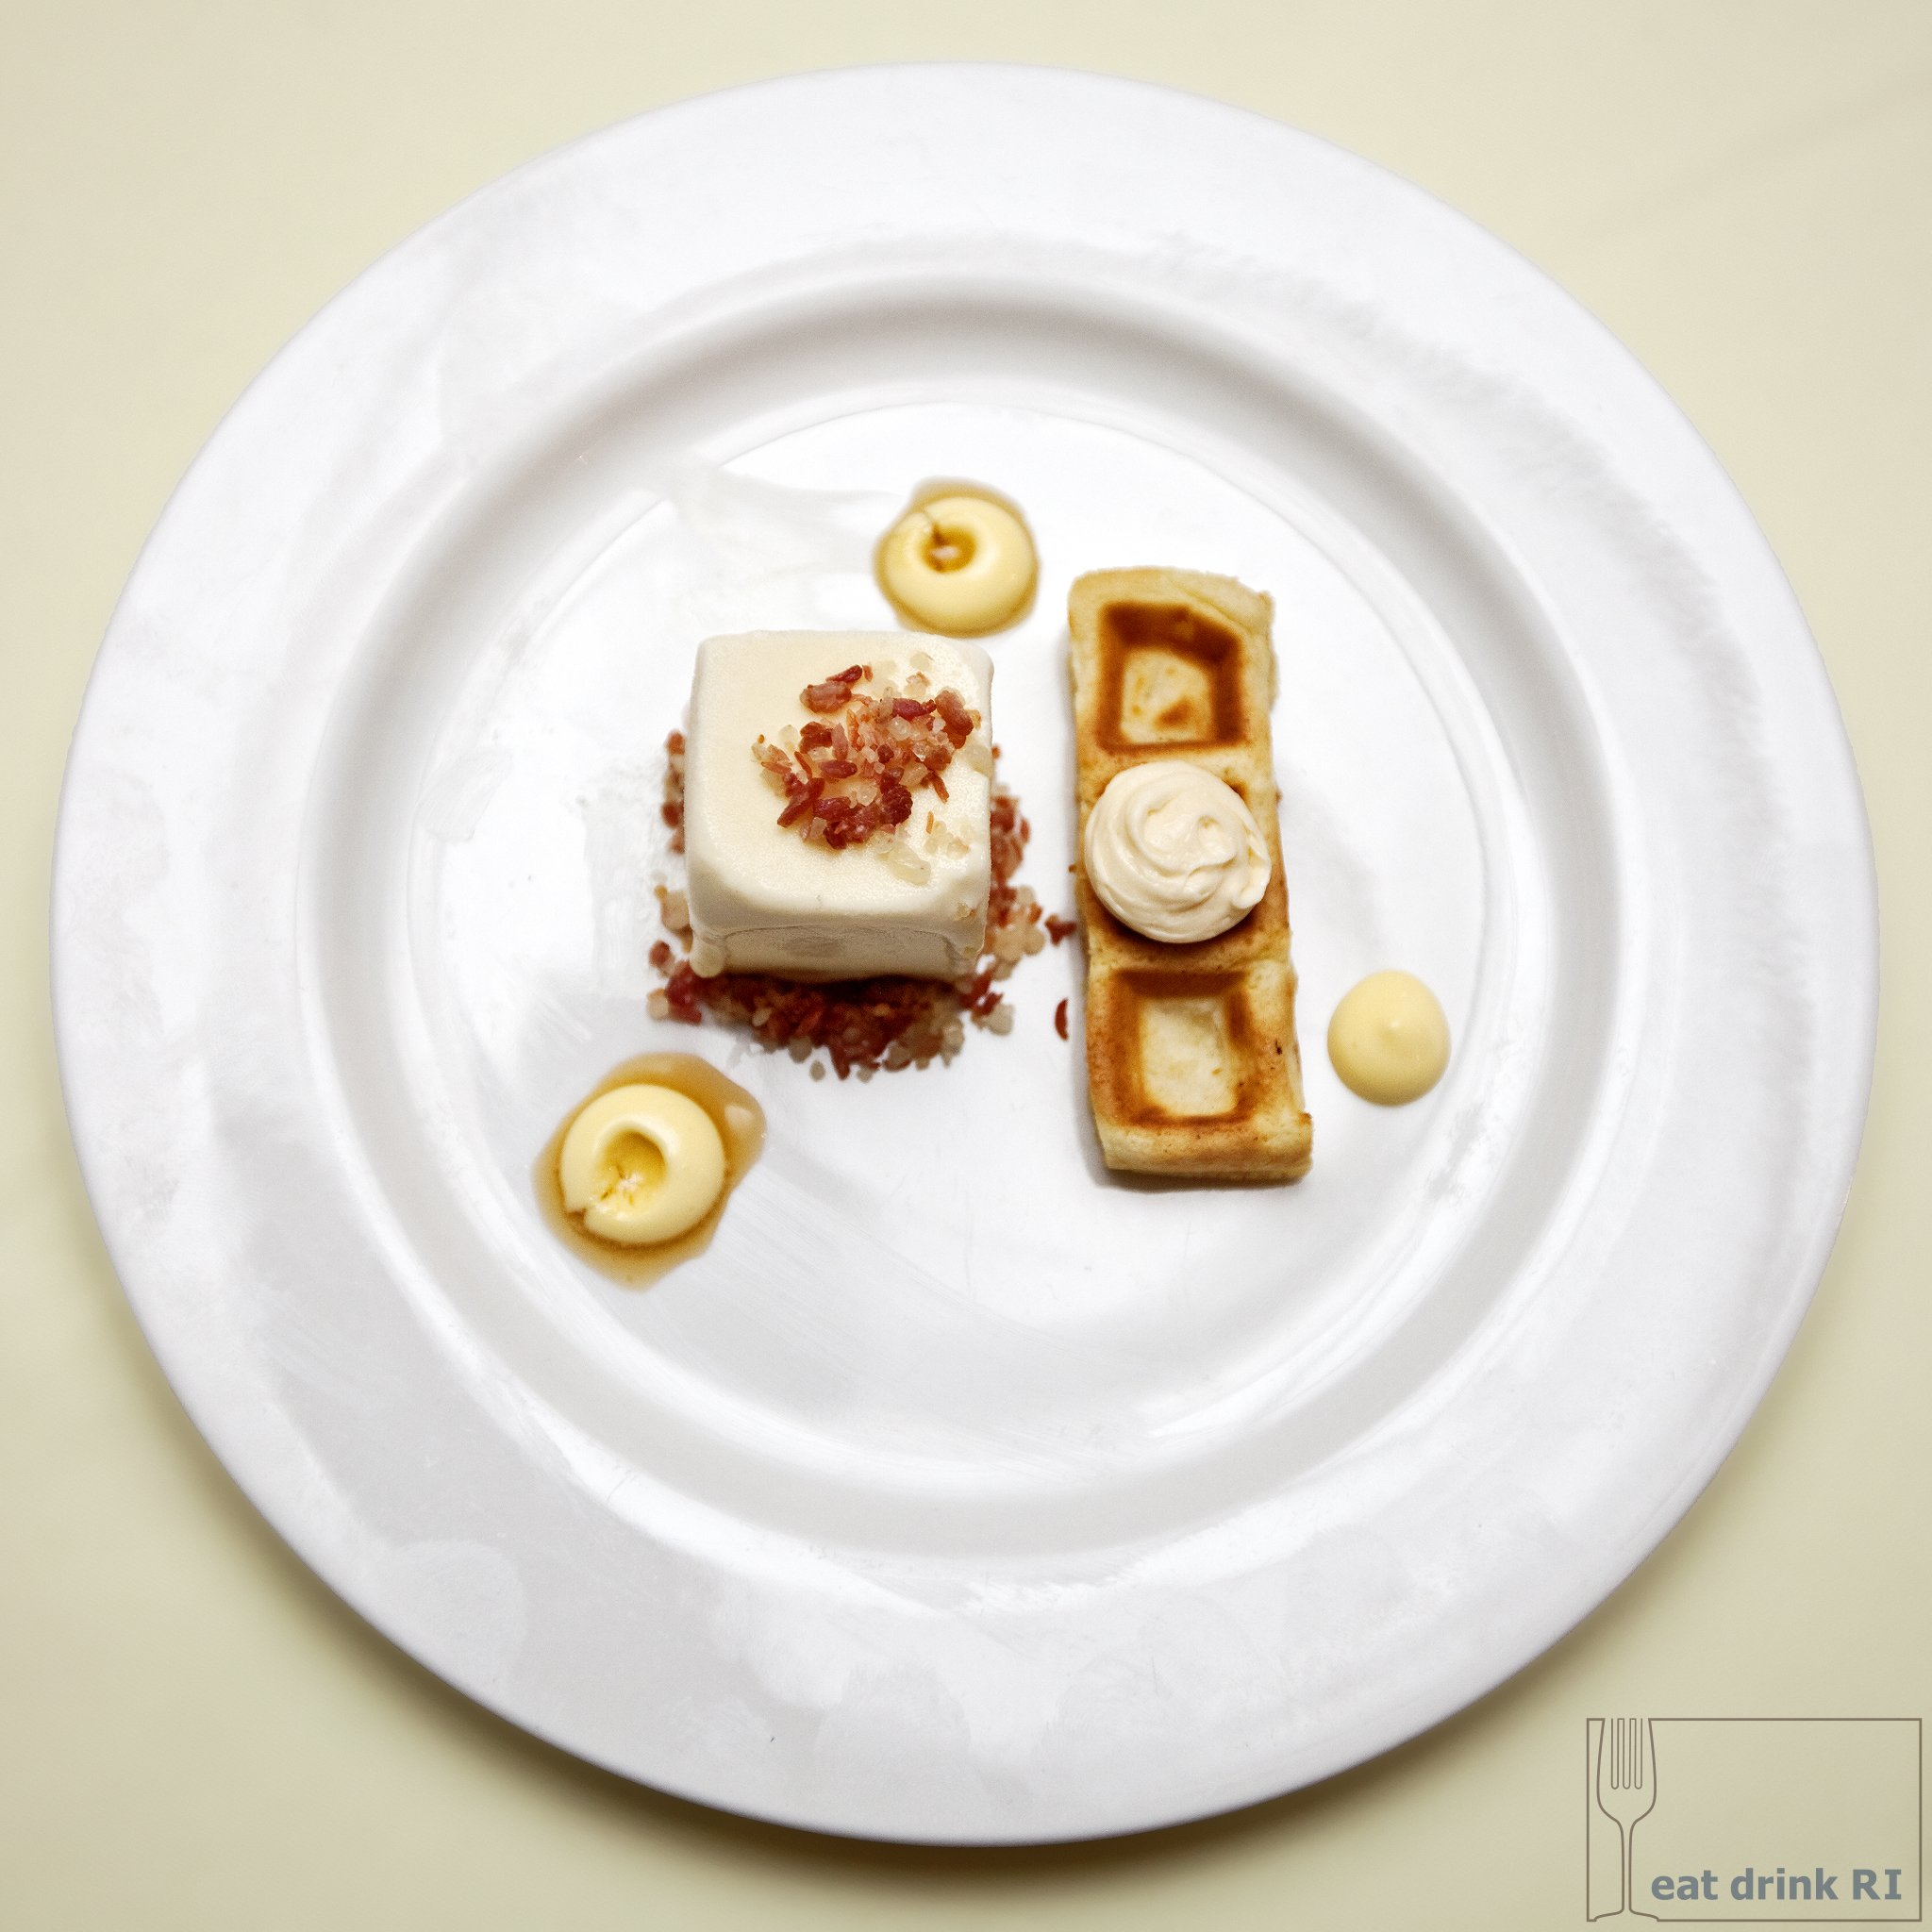 Chef Joseph Hafner's Breakfast for Dessert dish